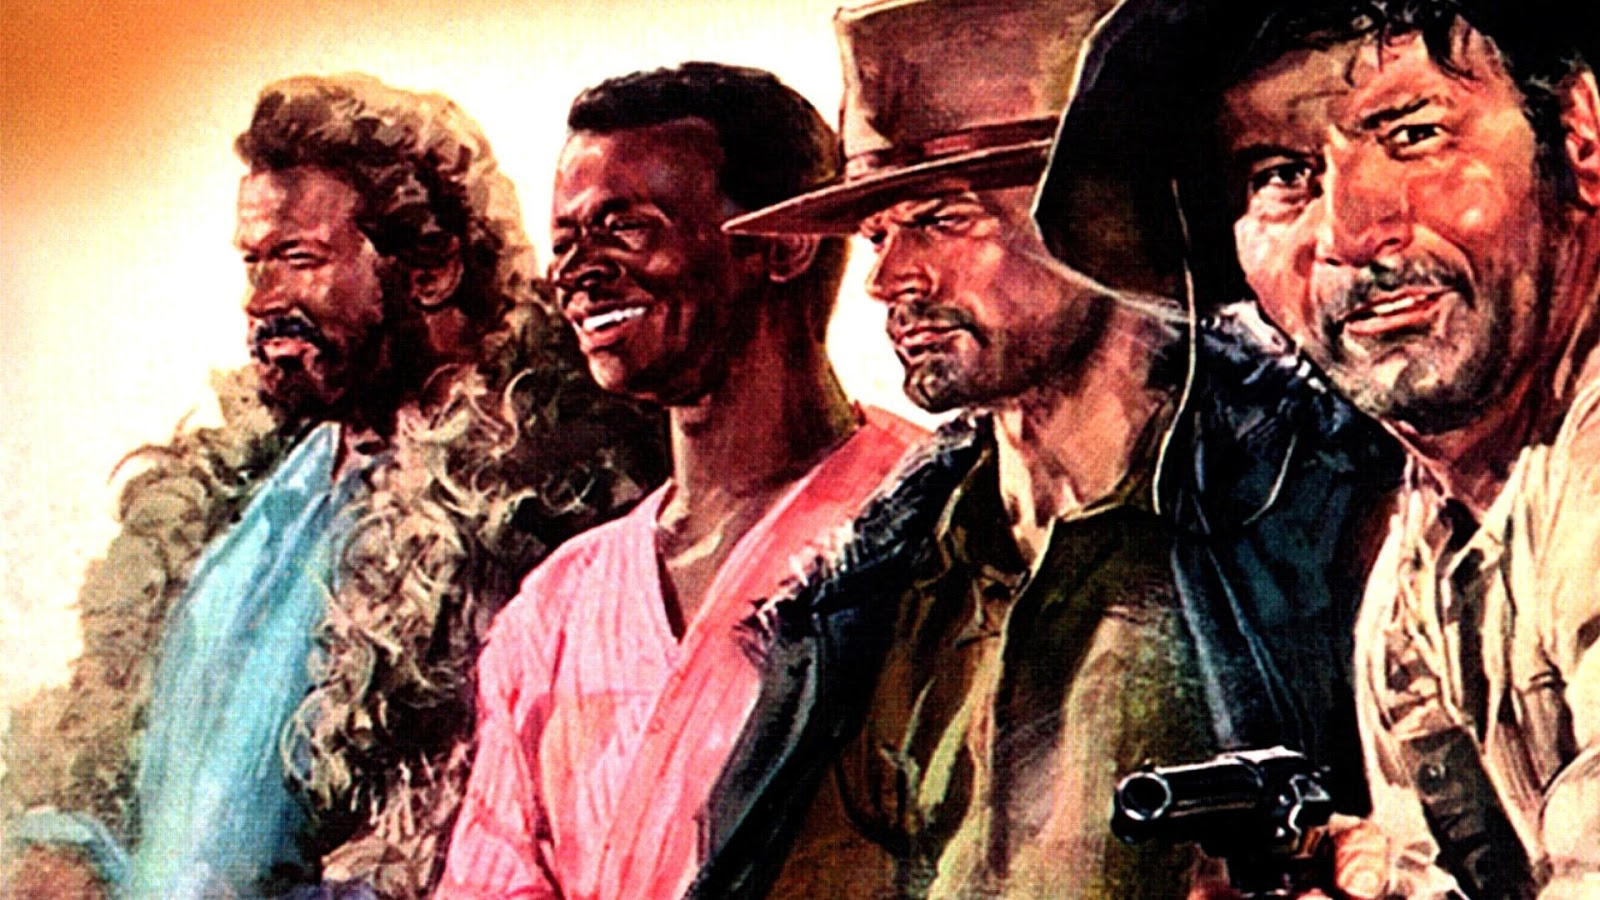 Filmes Bud Spencer E Terence Hill Dublado with regard to blog filmes para colecionar